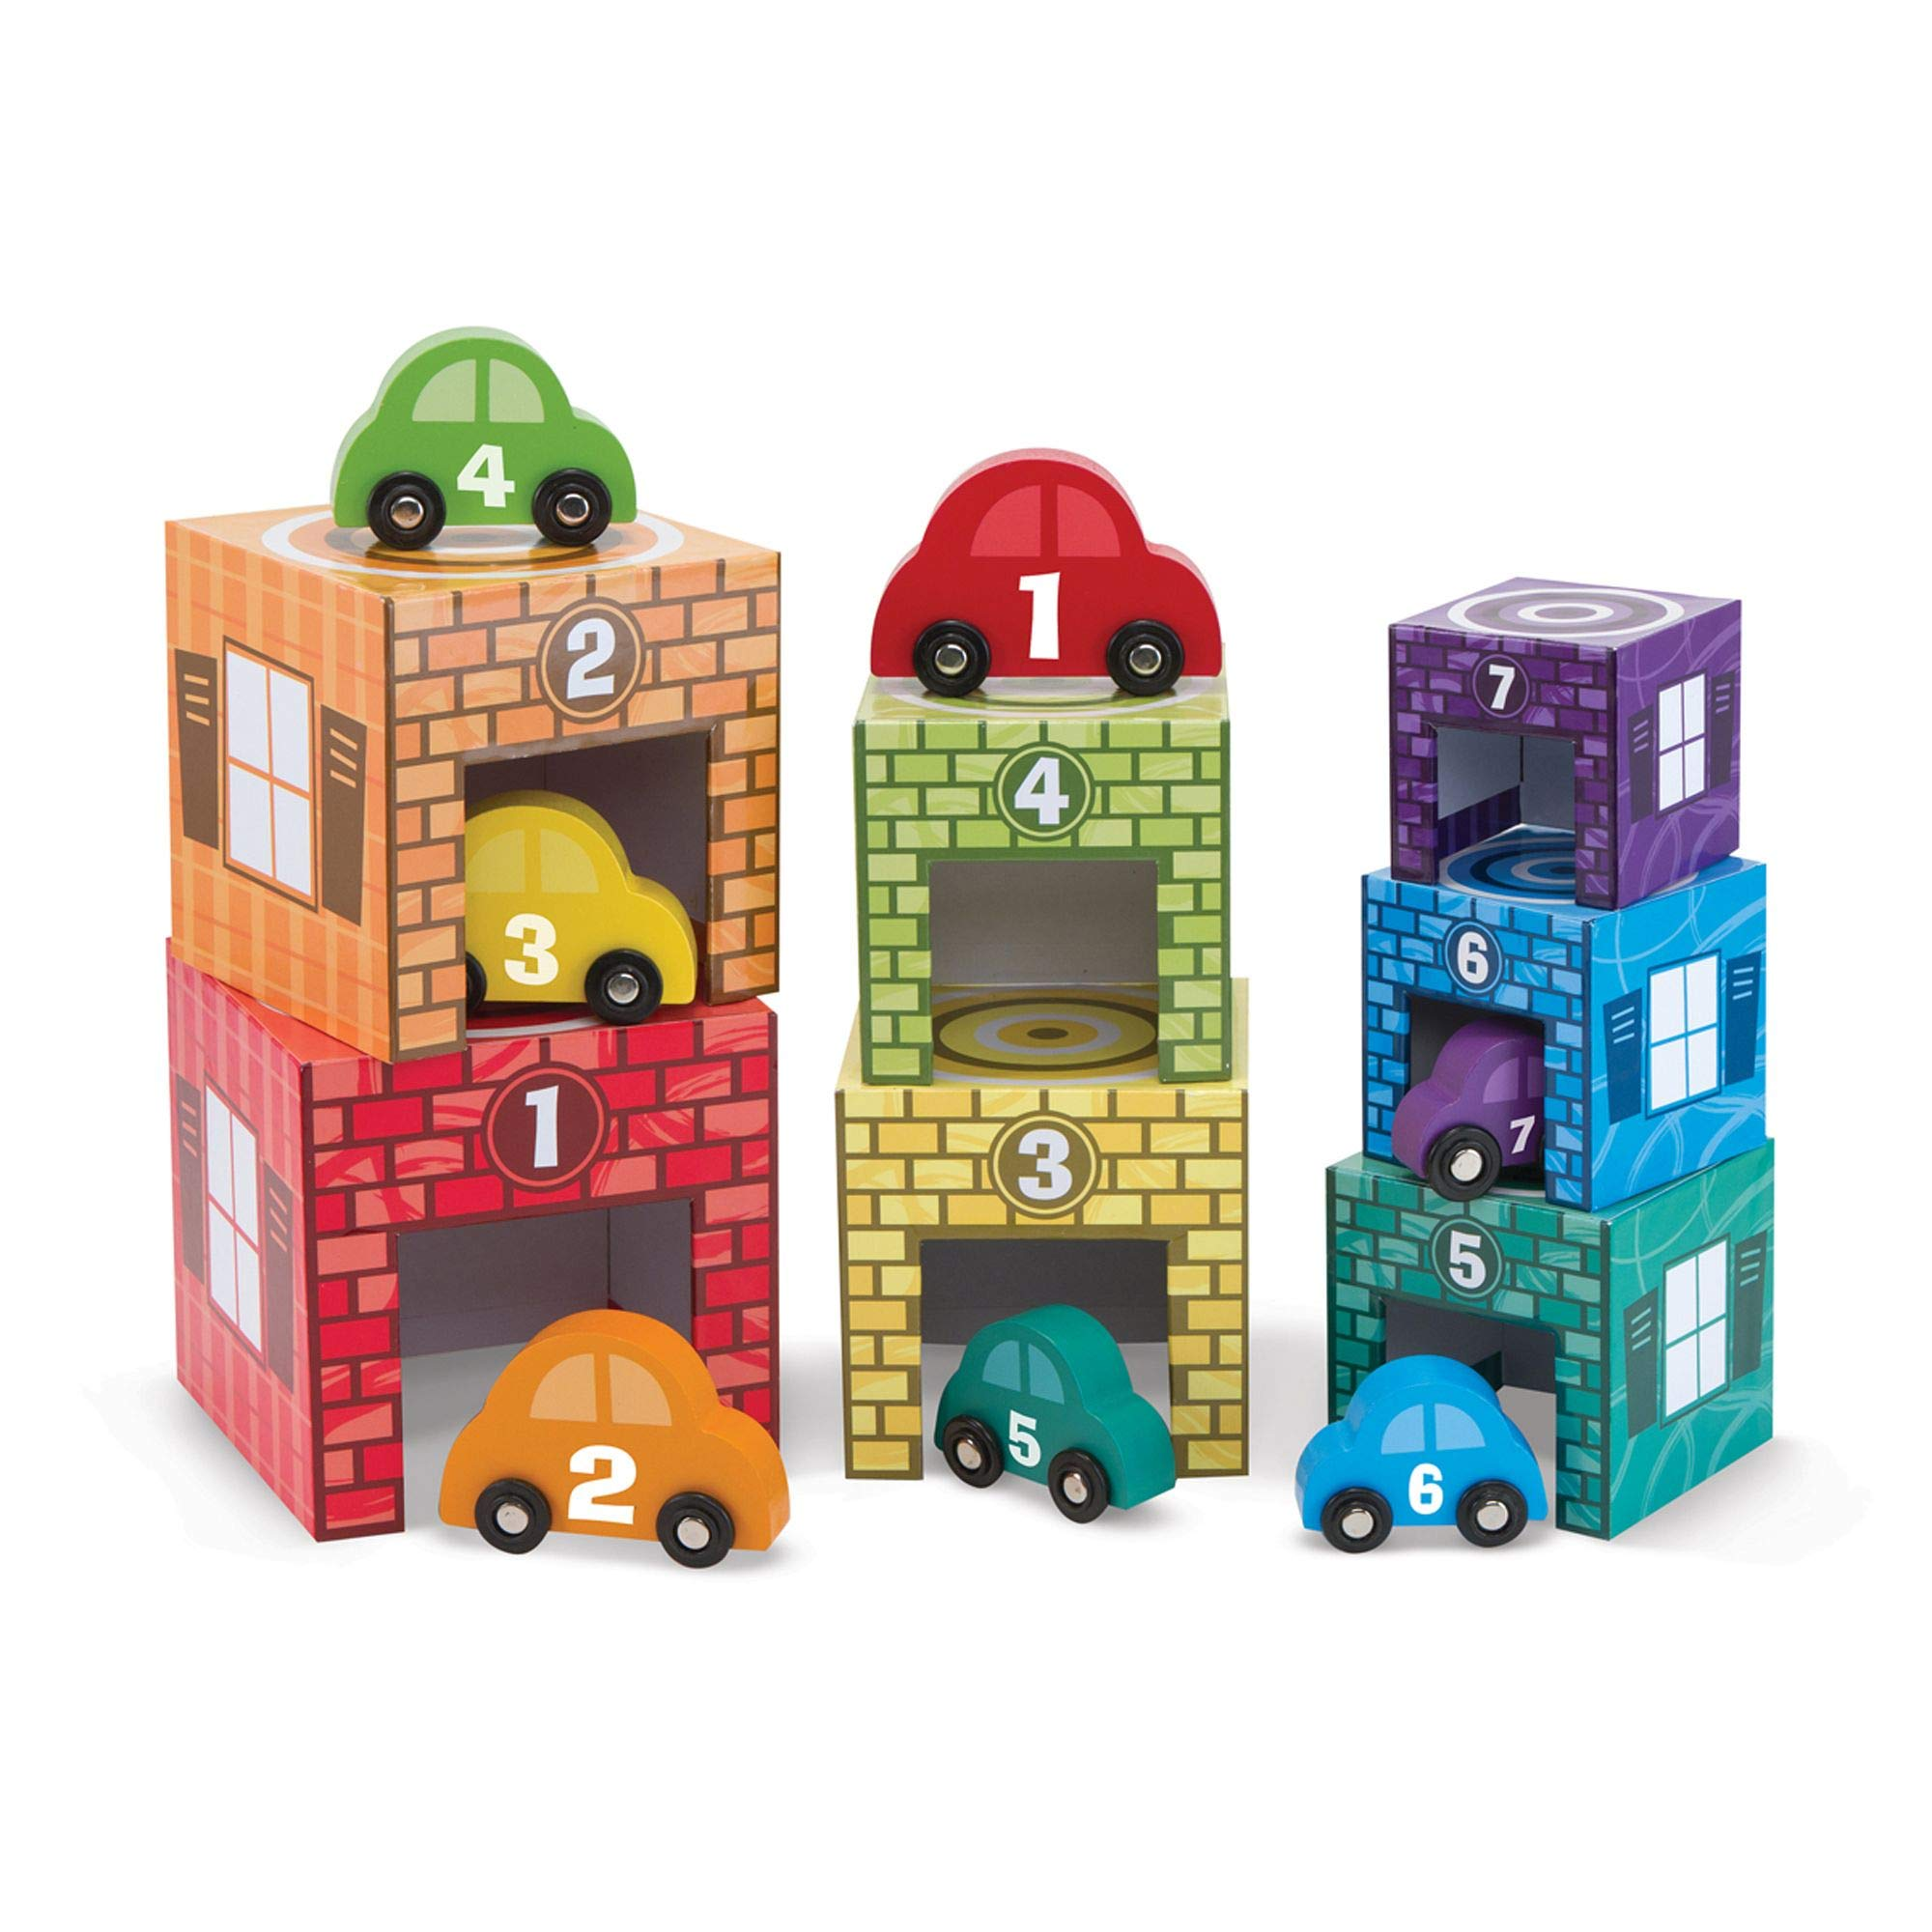 Melissa & Doug Nesting and Sorting Garages and Cars with 7 Graduated Garages and 7 Stackable Wooden Cars